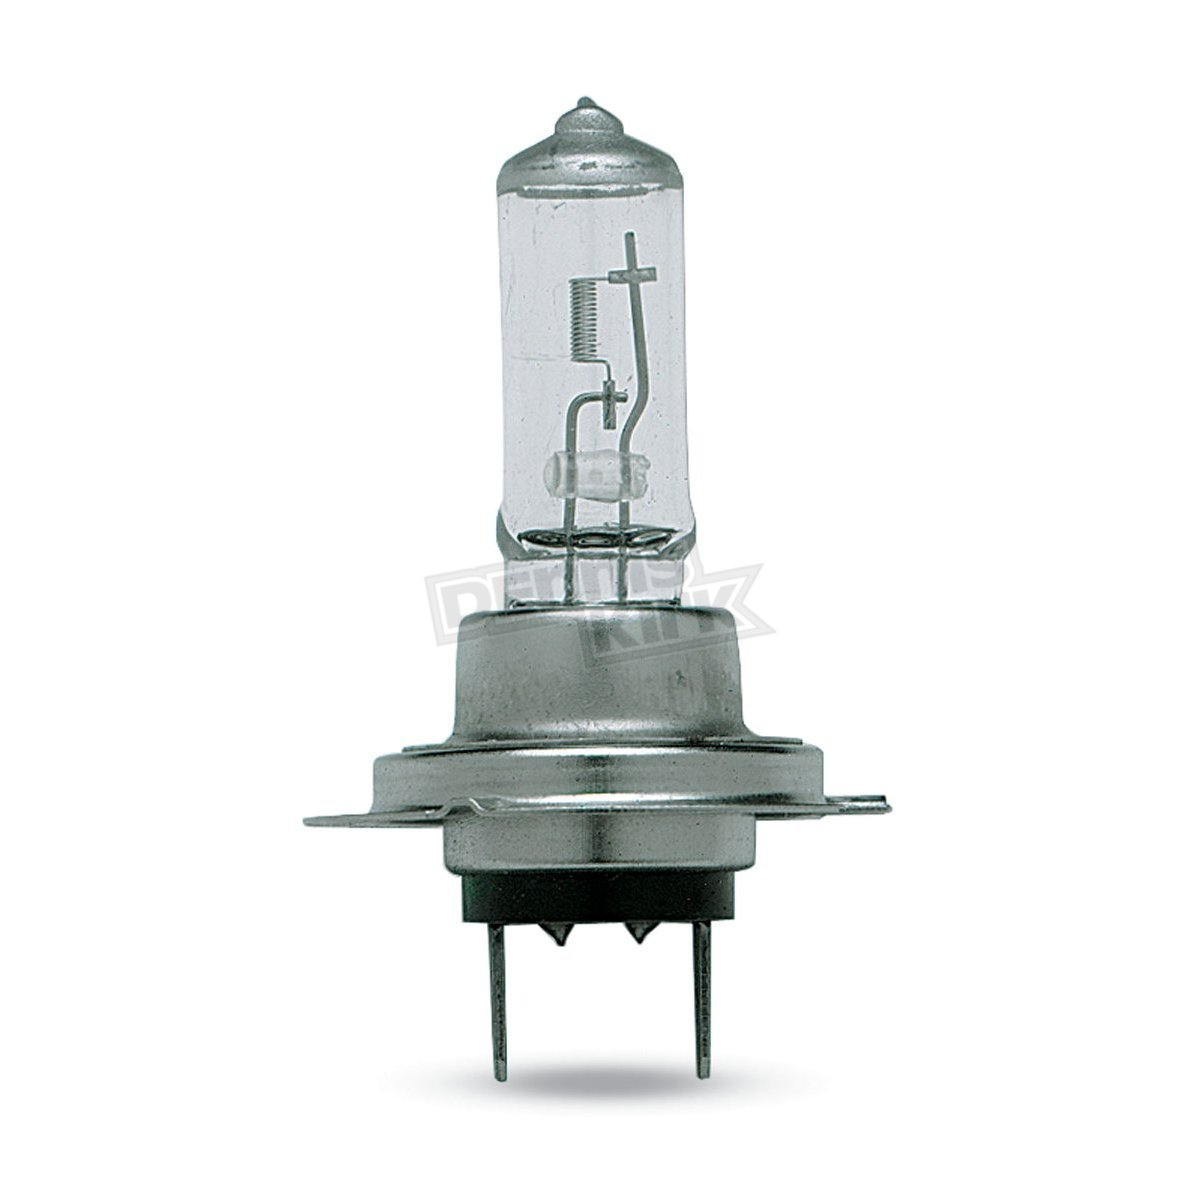 Pack of 1 Eiko H7100 H7 Series Halogen Replacement Bulb, EIkO Auto Lighting